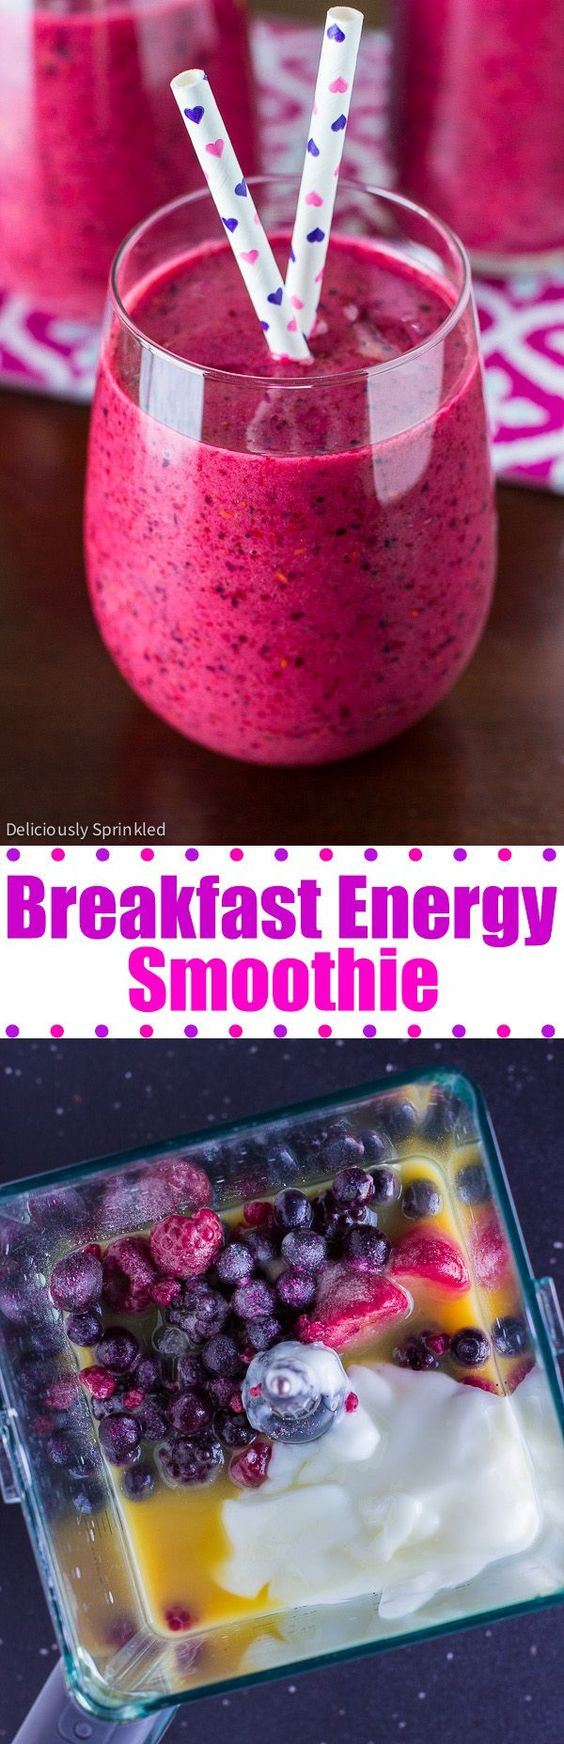 Breakfast Energy Smoothie Recipe